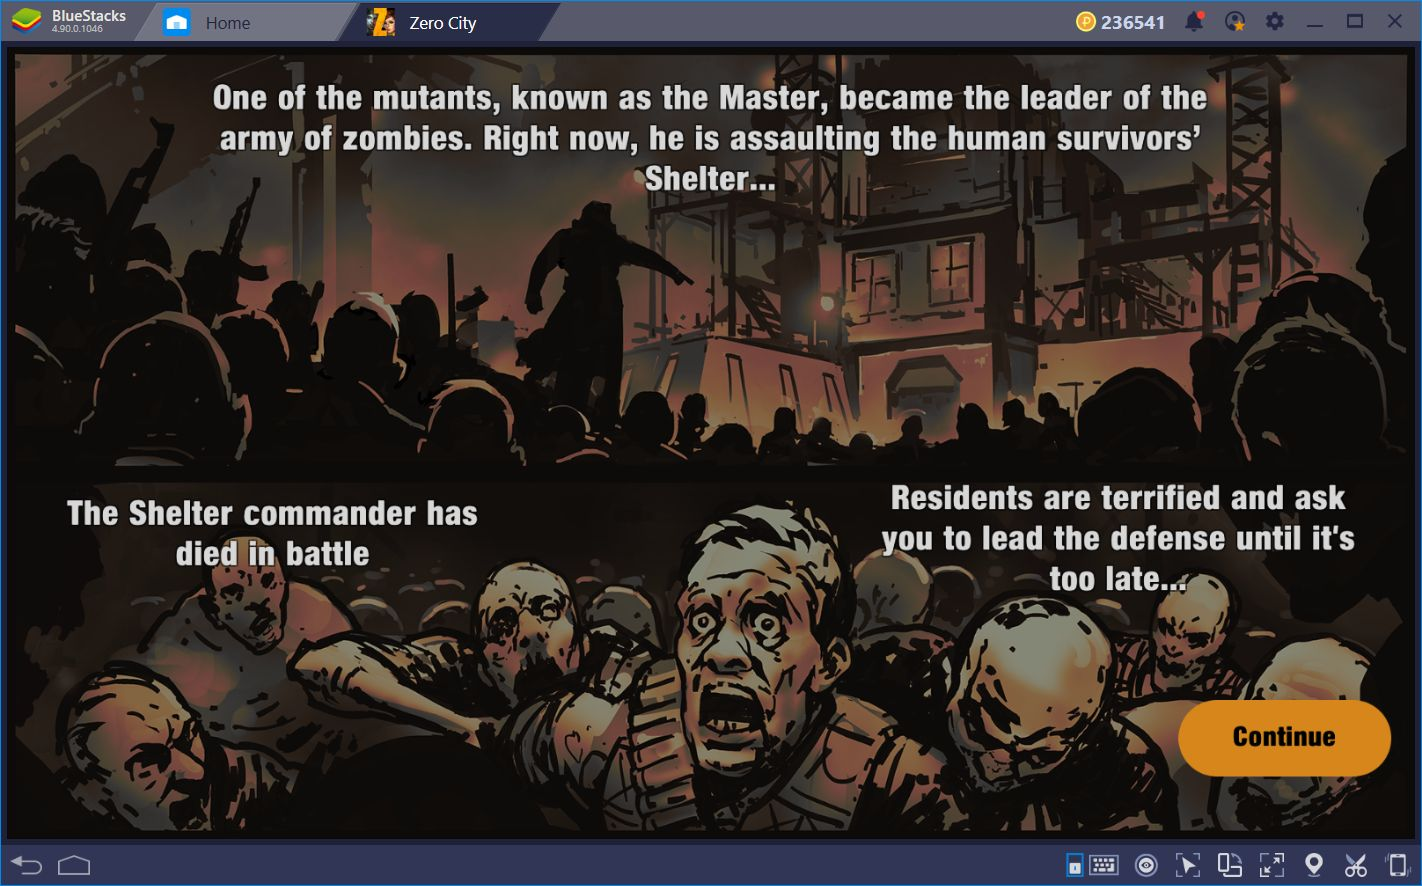 Build the Ultimate Shelter and Combat the Zombie Horde in Zero City